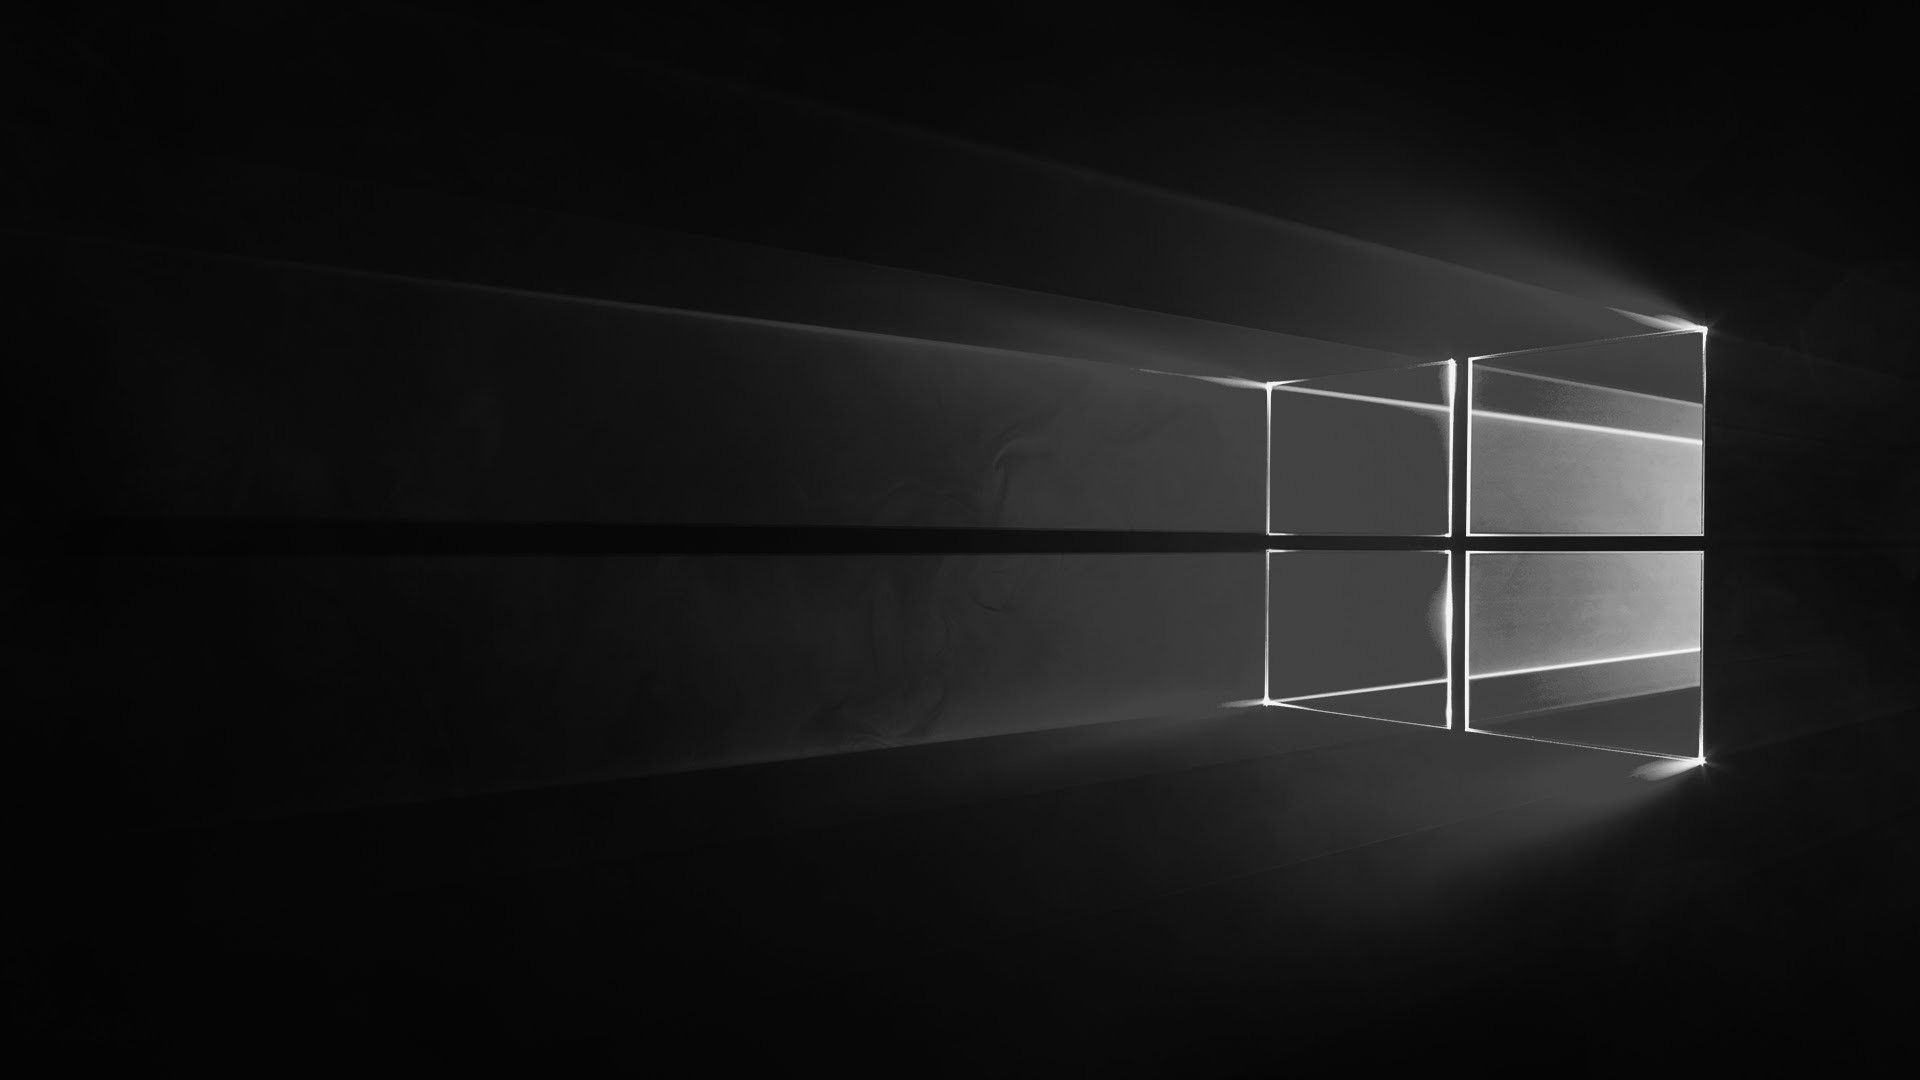 Download Gambar Wallpaper Hd Black Windows 10 Terbaru 2020 Windows 10 Gambar Deviantart